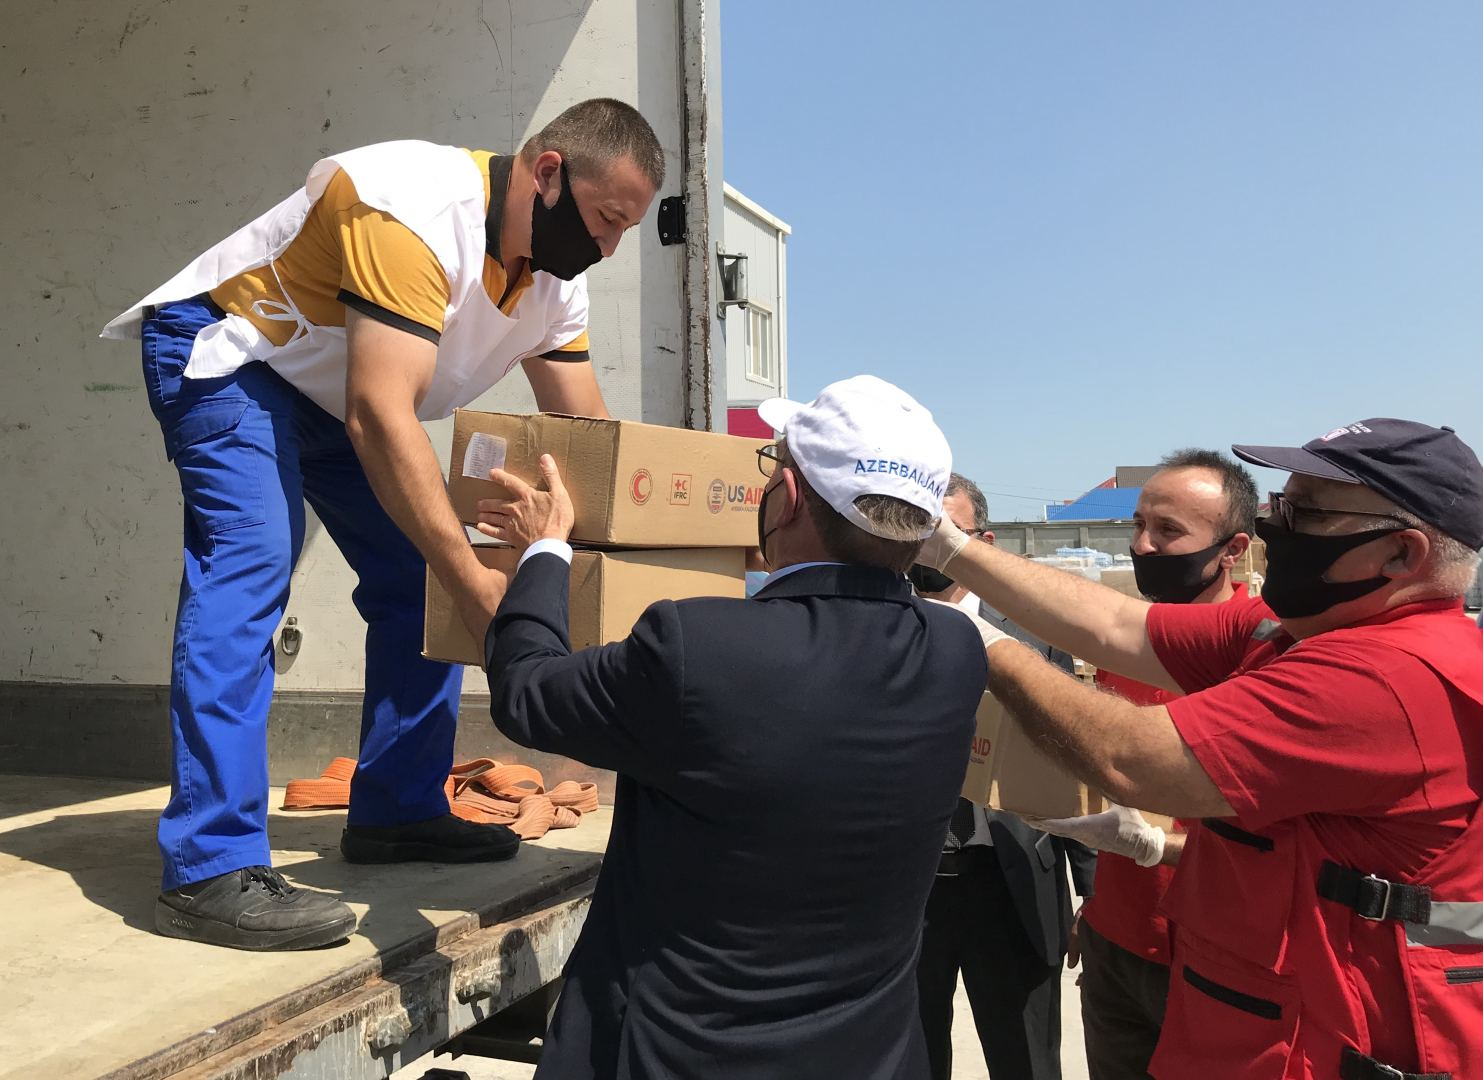 USAID Supports Delivery of Food and Hygiene Supplies for 3,500 Vulnerable Families by Azerbaijan Red Crescent Society (PHOTO)